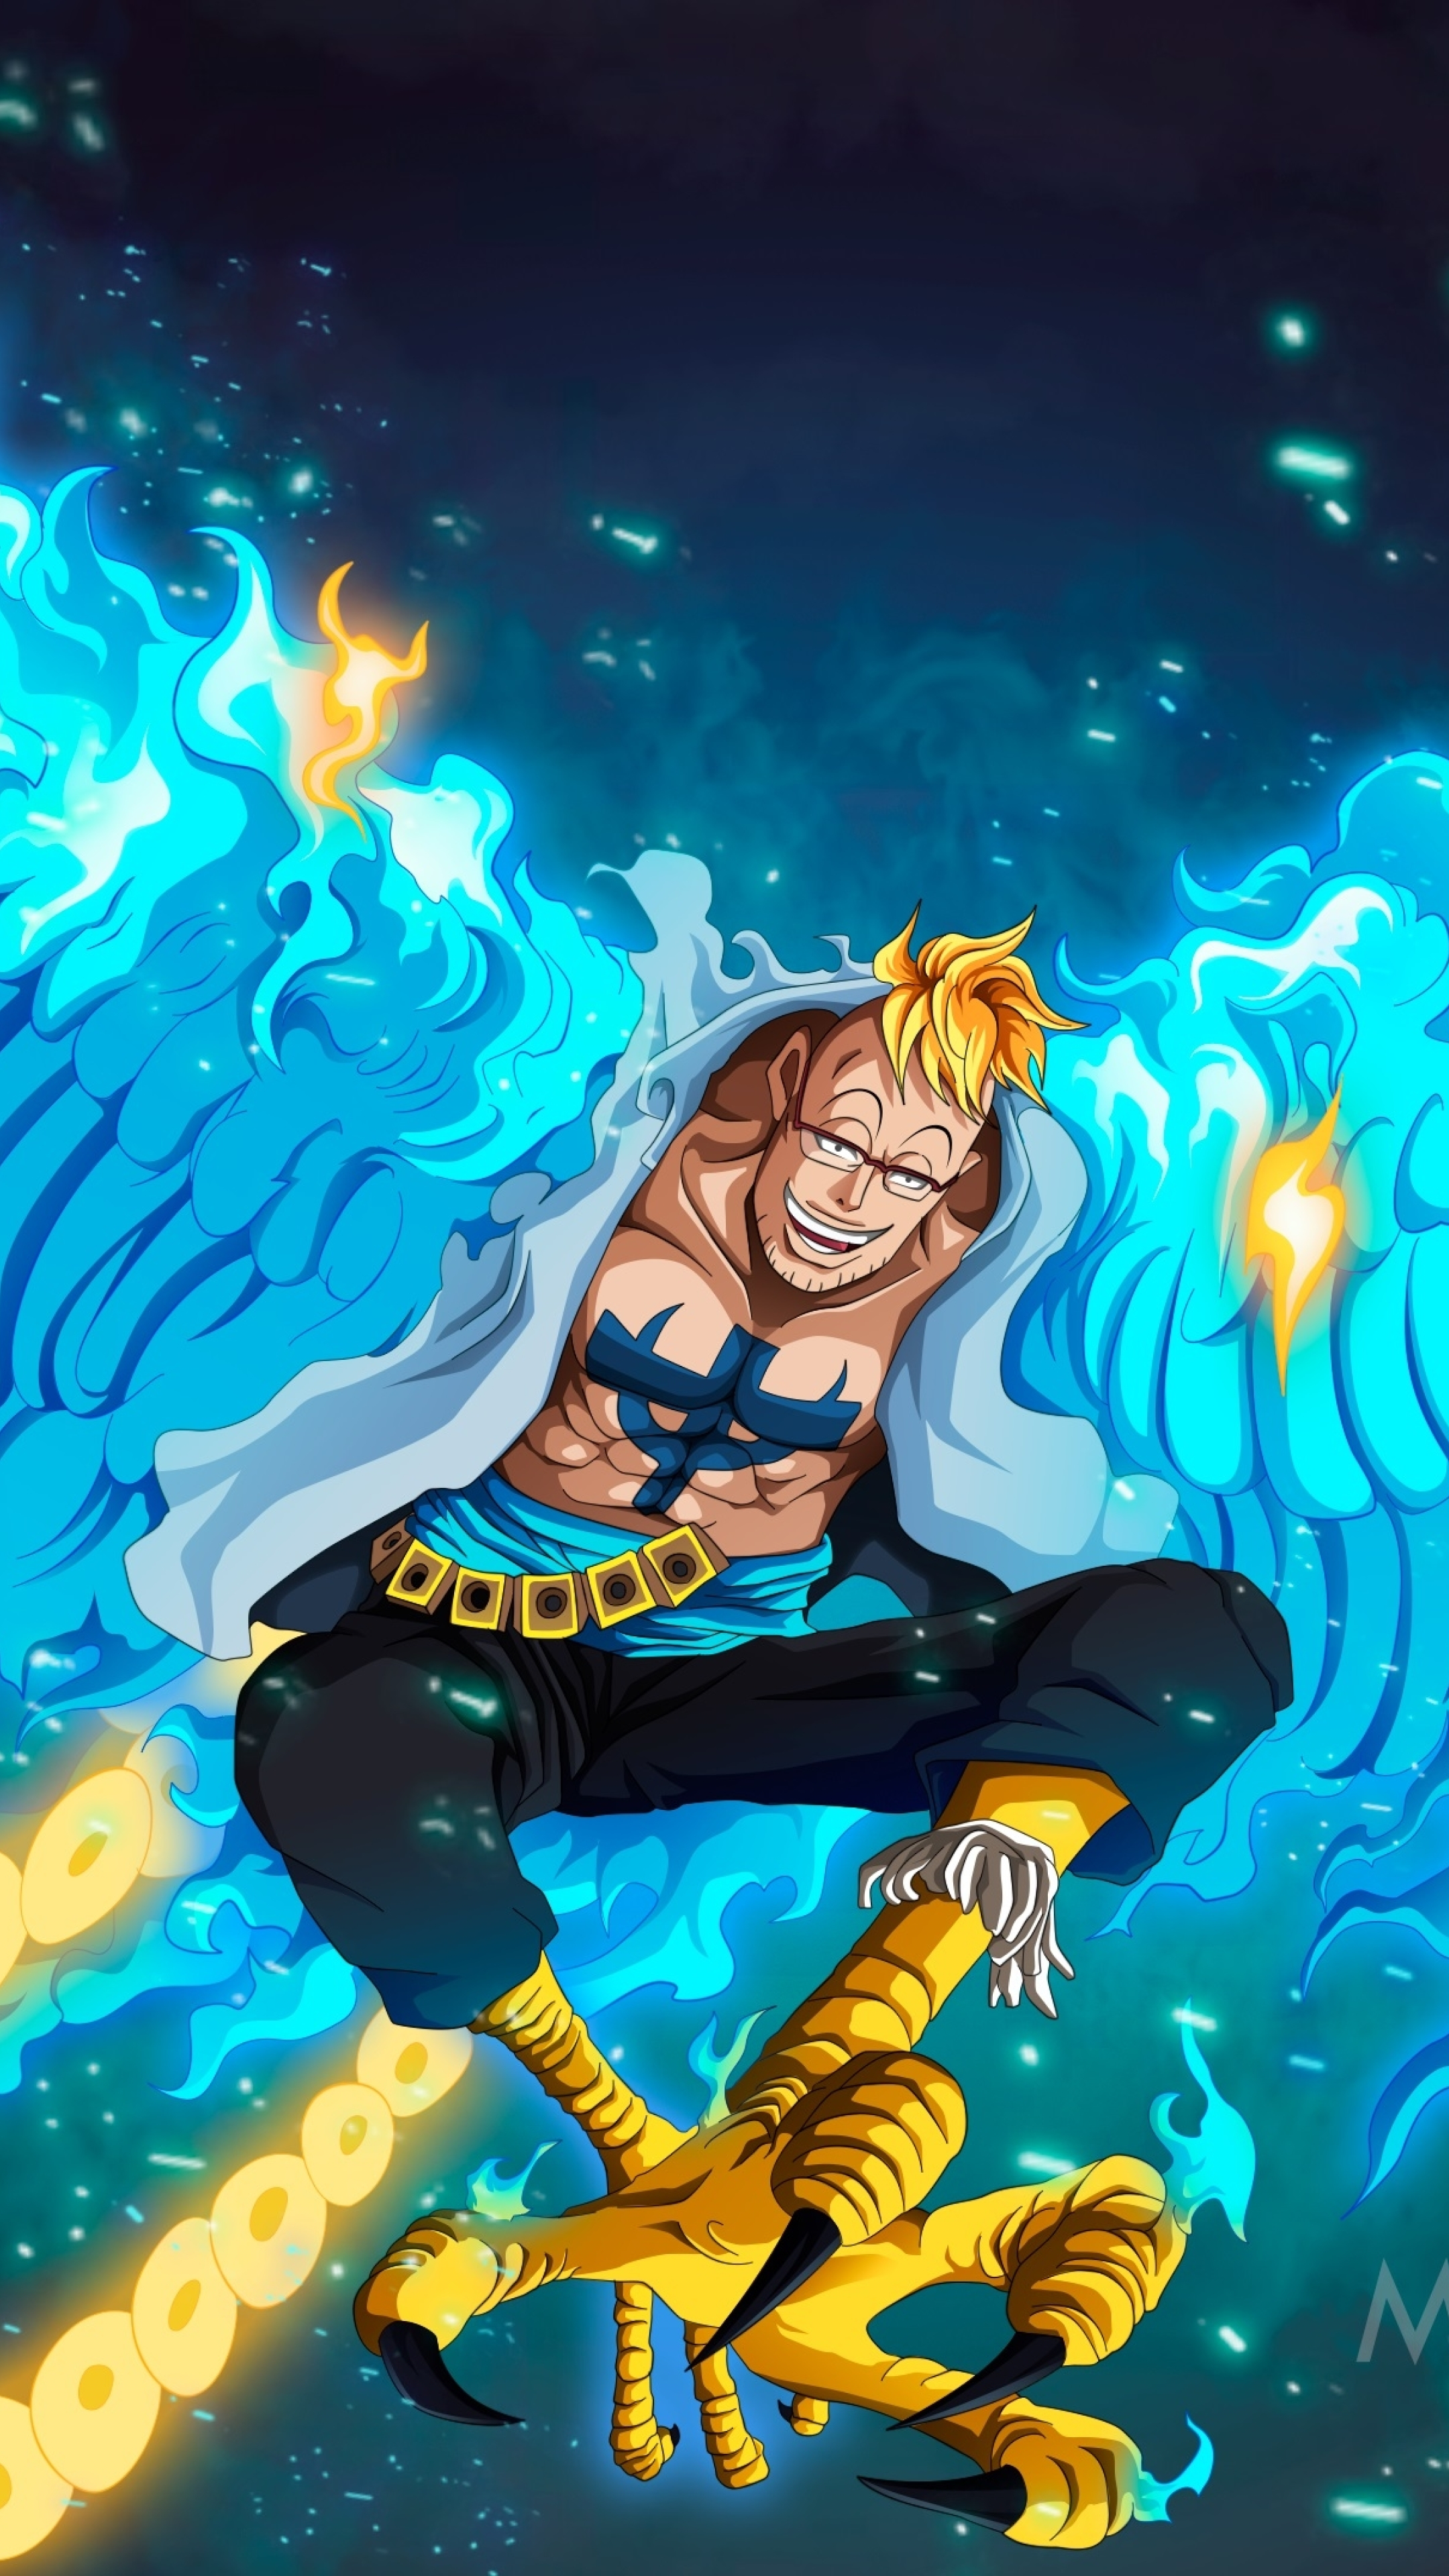 2160x3840 Marco One Piece Art Sony Xperia X Xz Z5 Premium Wallpaper Hd Anime 4k Wallpapers Images Photos And Background